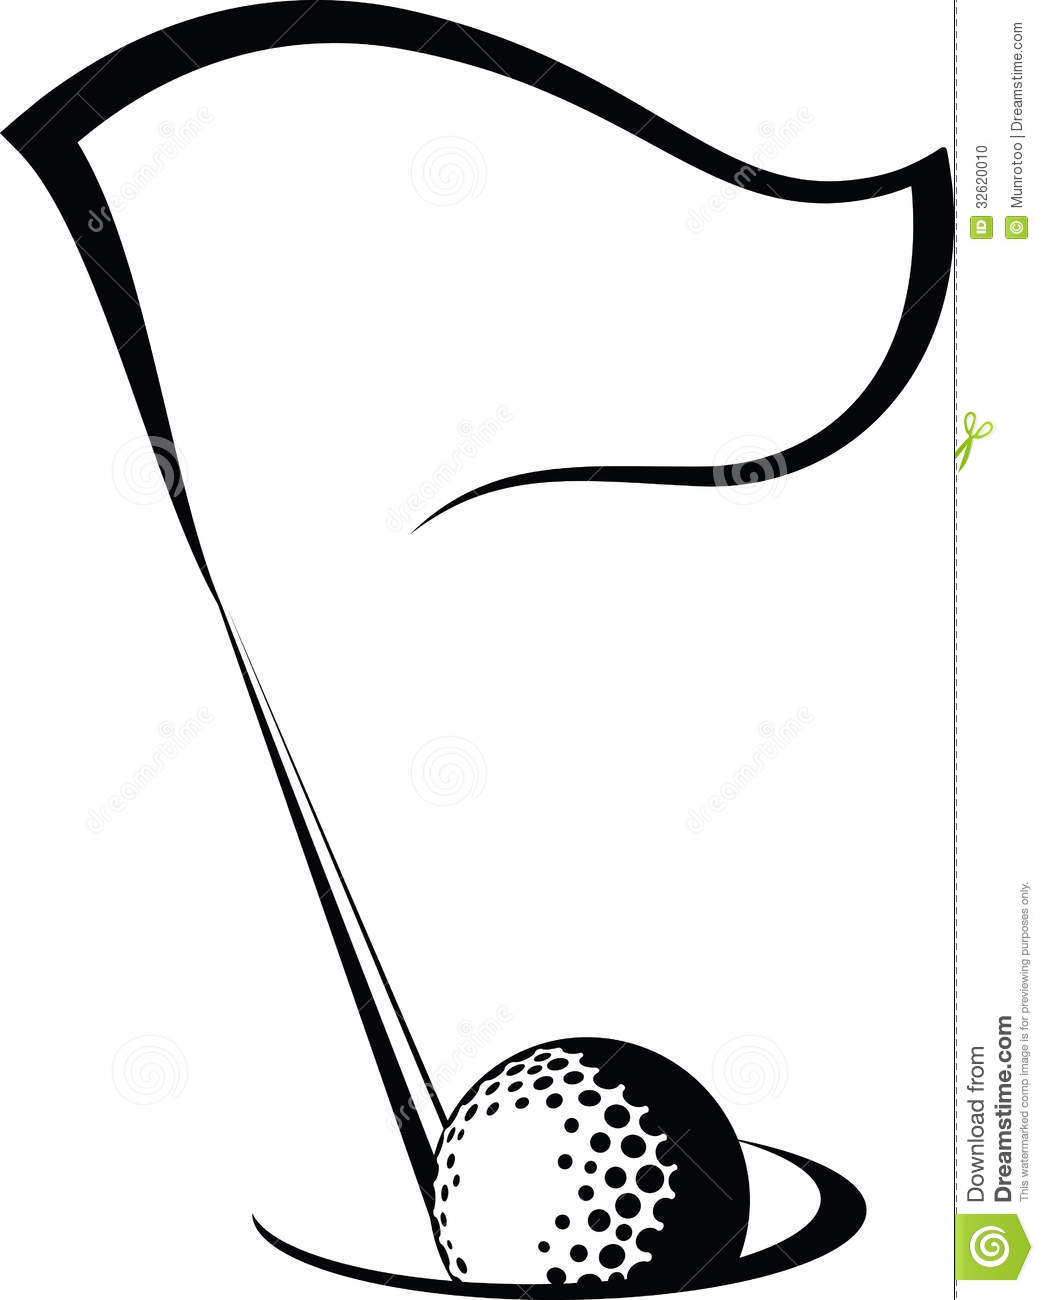 Free black and white golf clipart svg free library Golf Clipart Black And White | Clipart Panda - Free Clipart Images svg free library